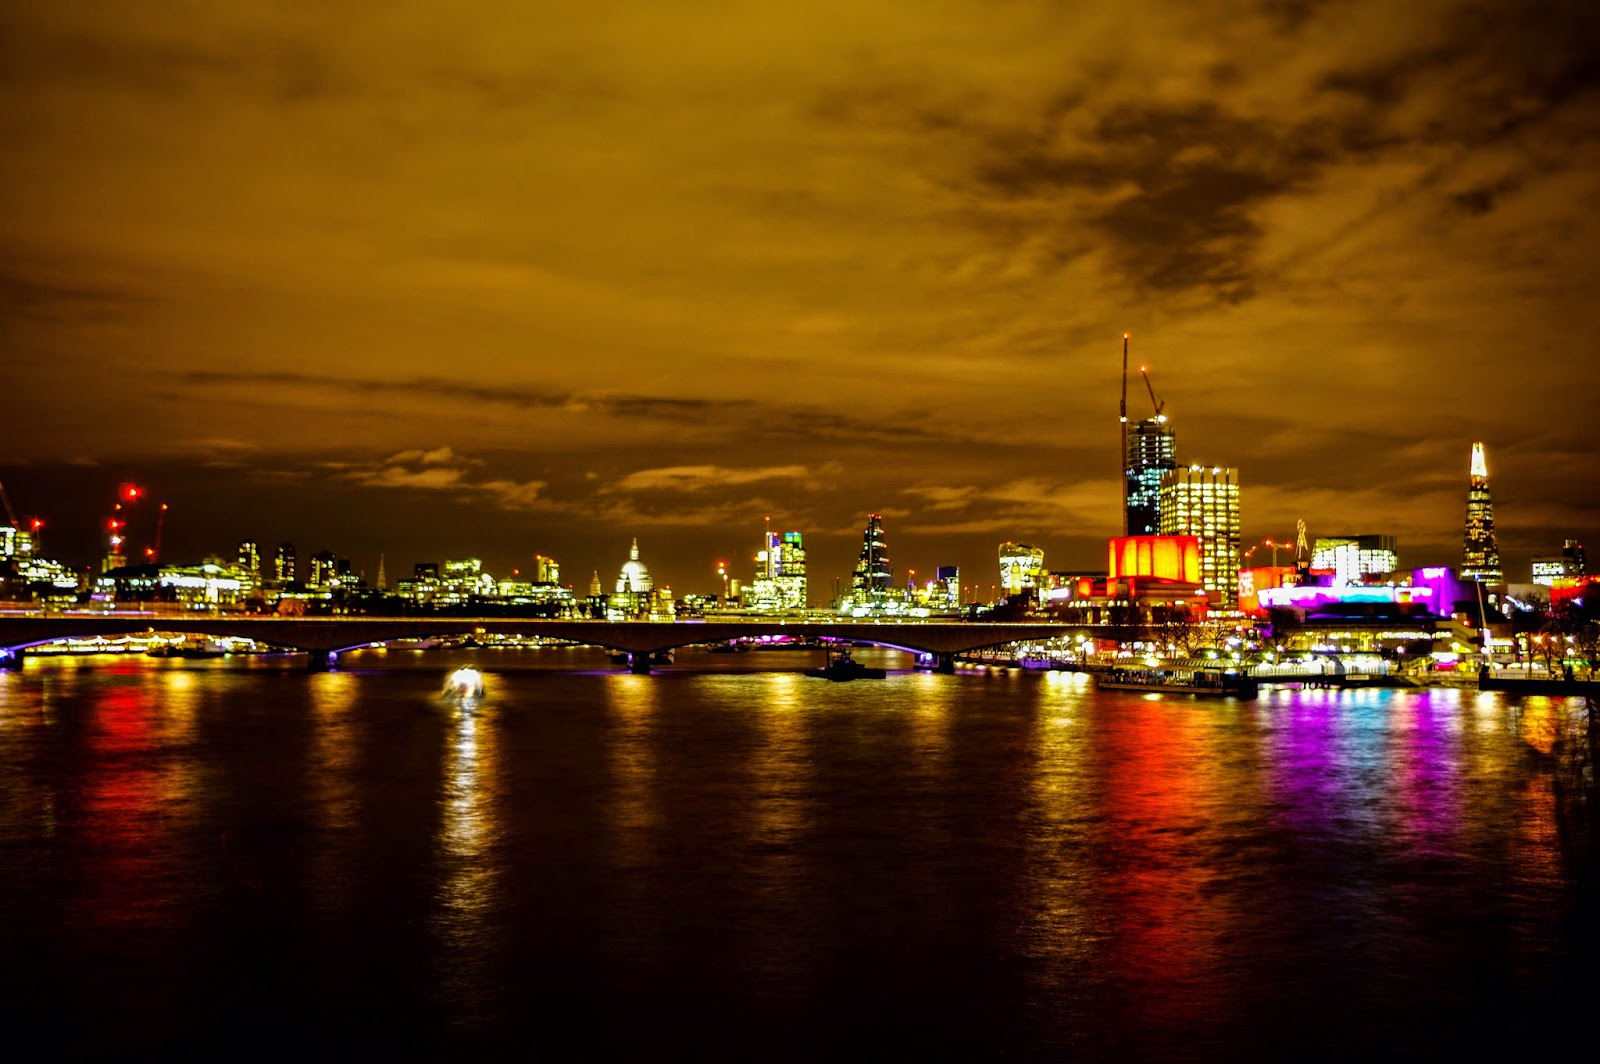 http://jerogiphotography.blogspot.com/2015/03/london-by-night.html